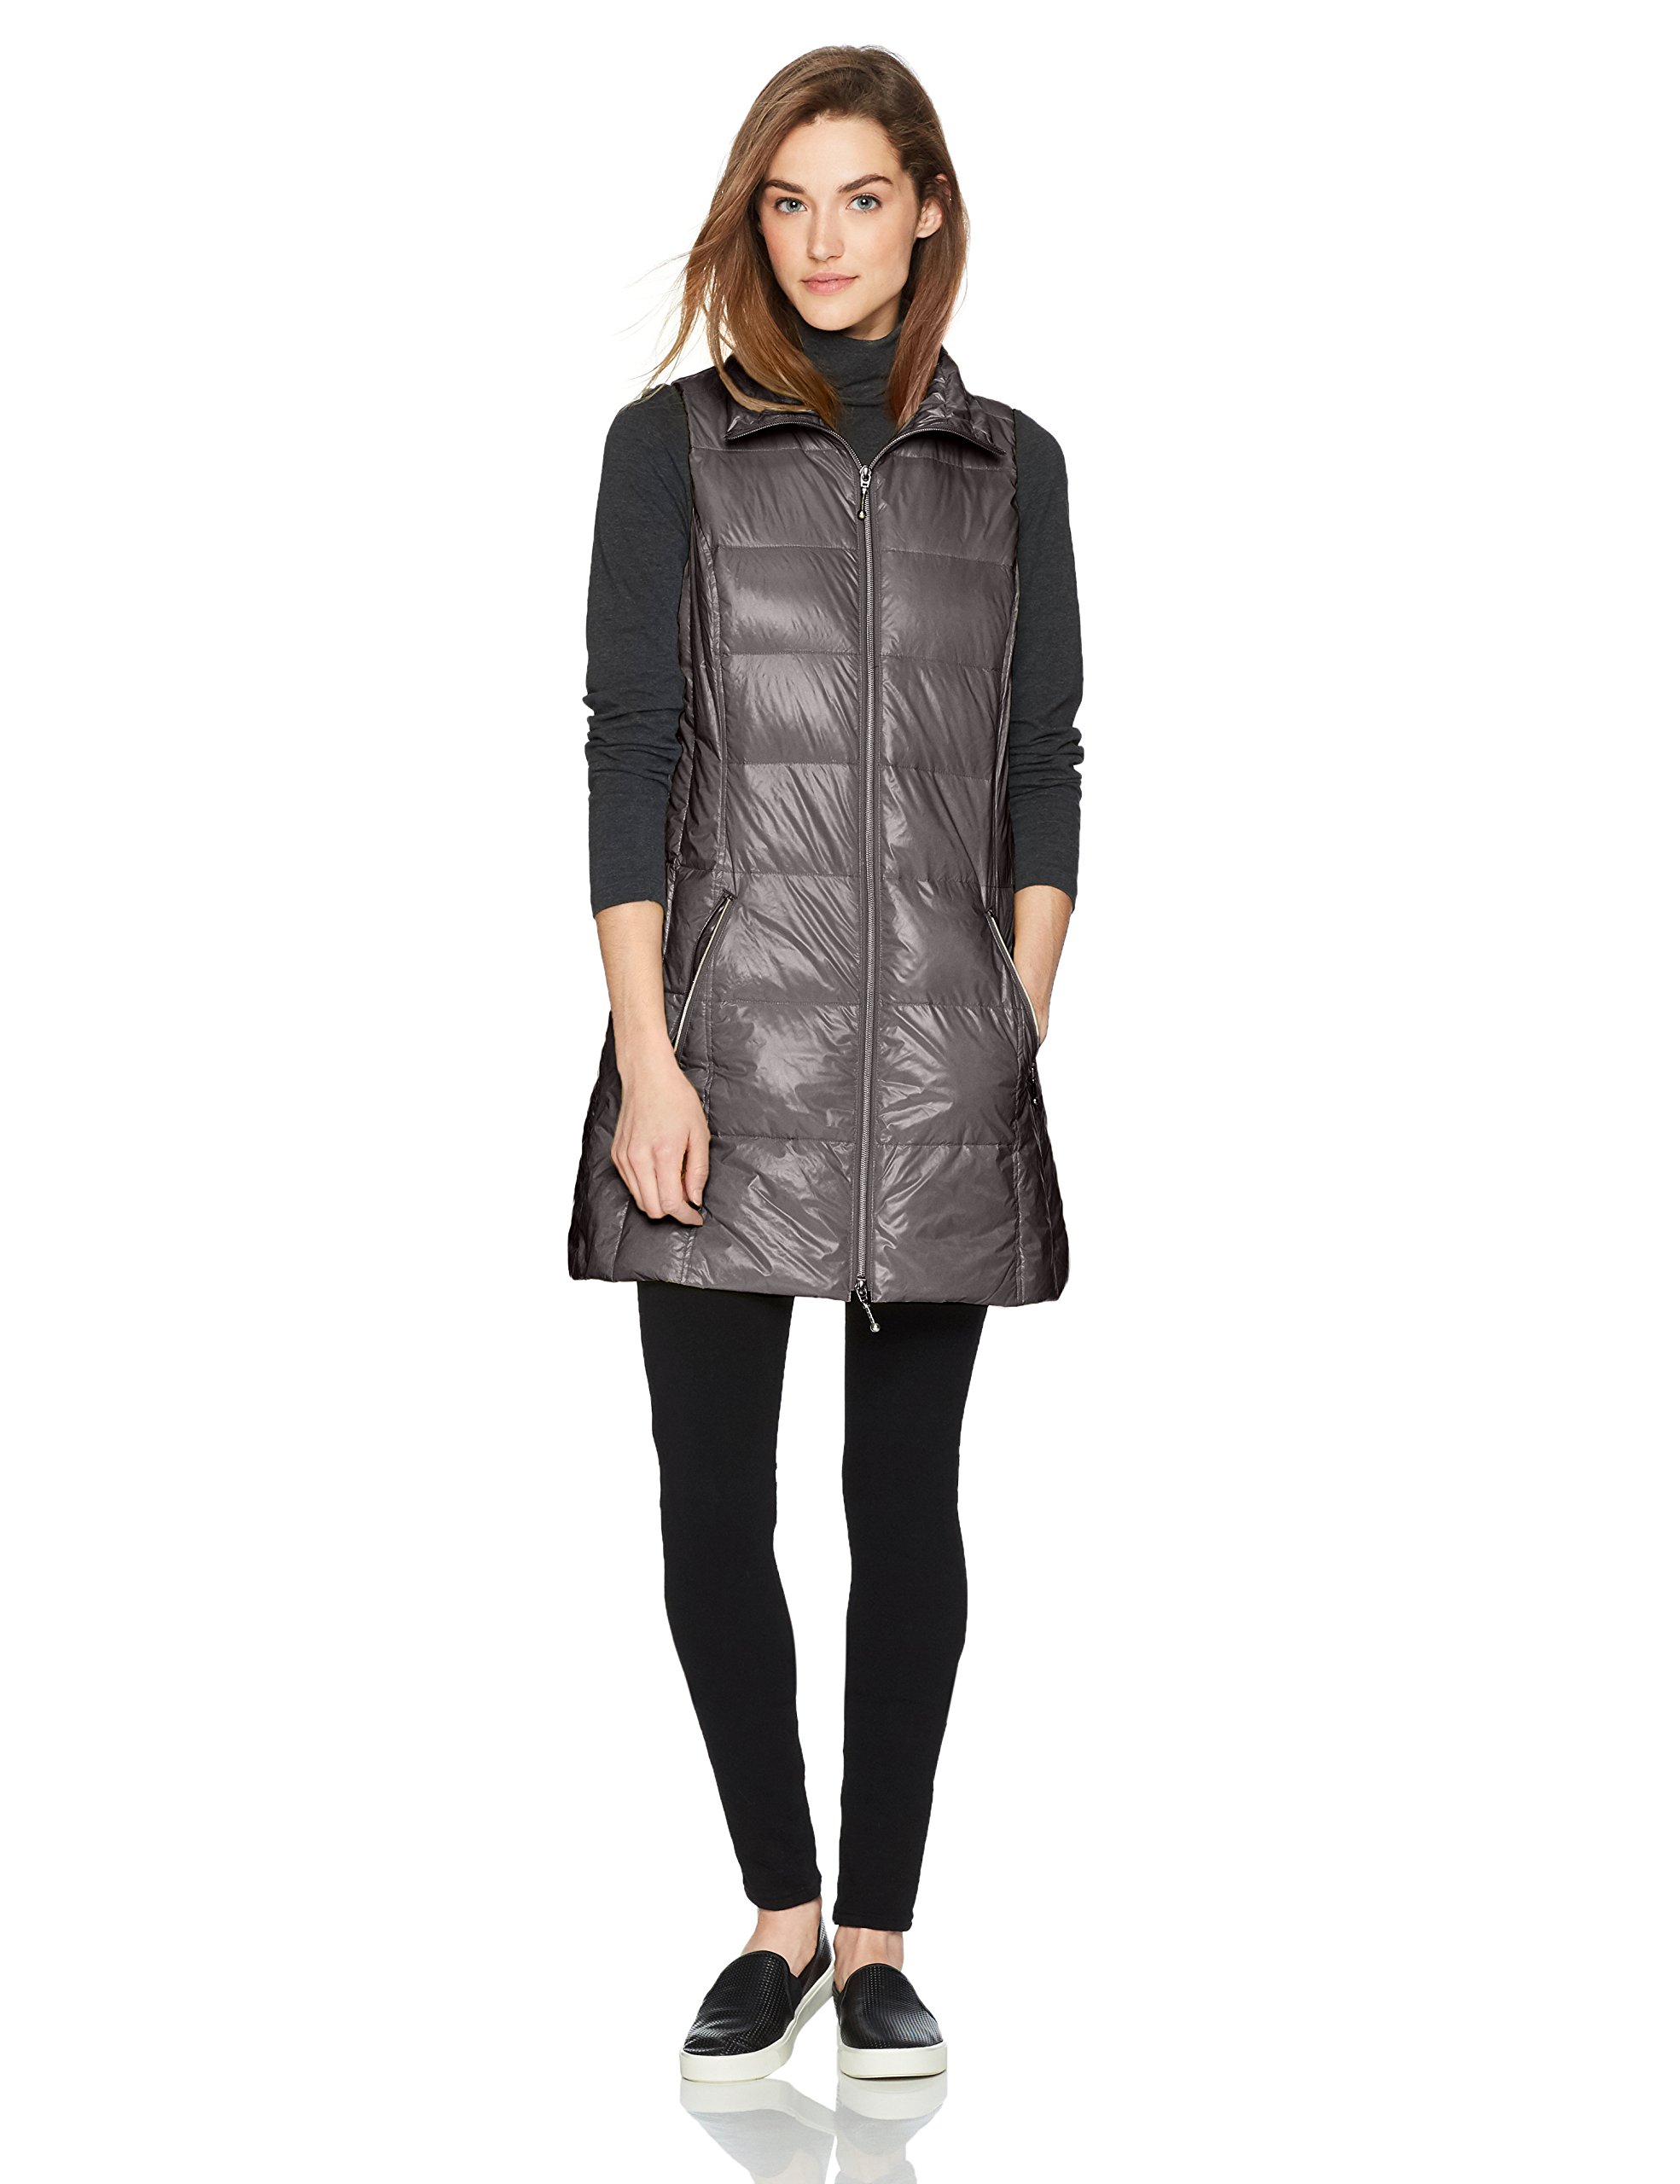 Coatology Women's Classic Long Down Vest, Charcoal, M by Coatology